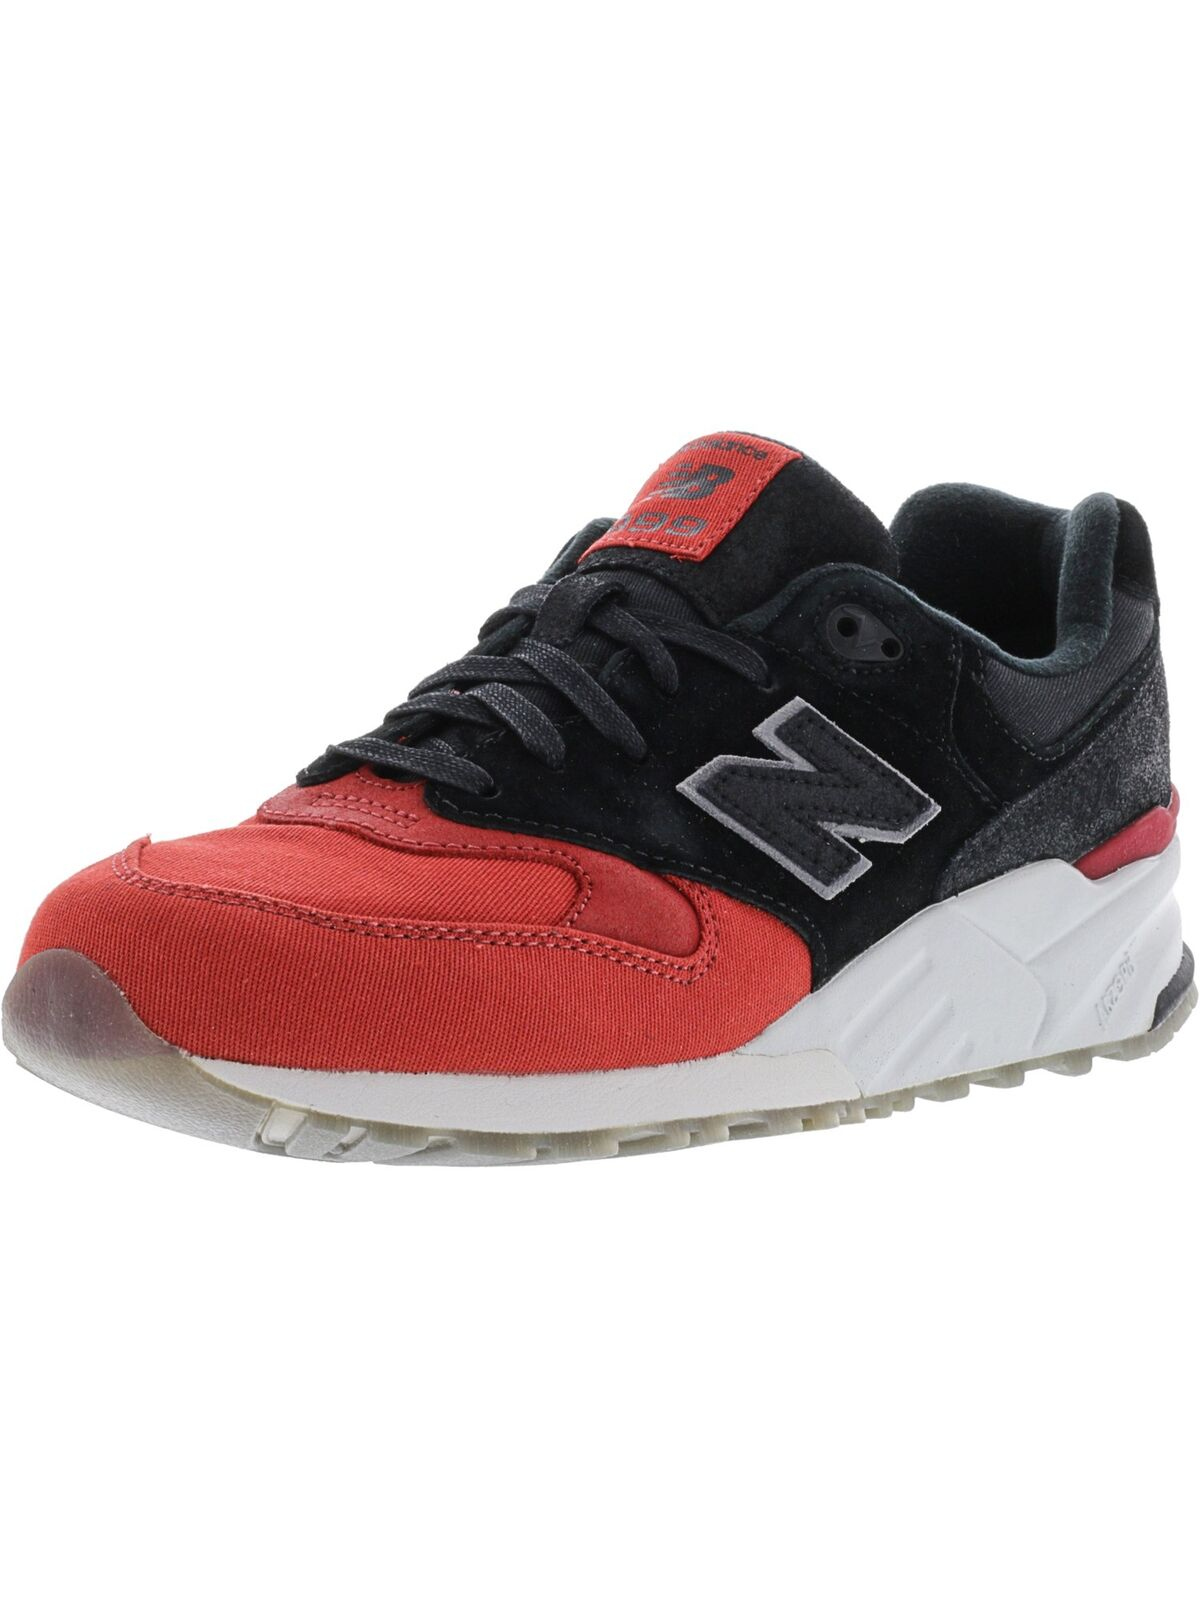 New Balance Men's Ml999 Ankle-High Canvas Running shoes